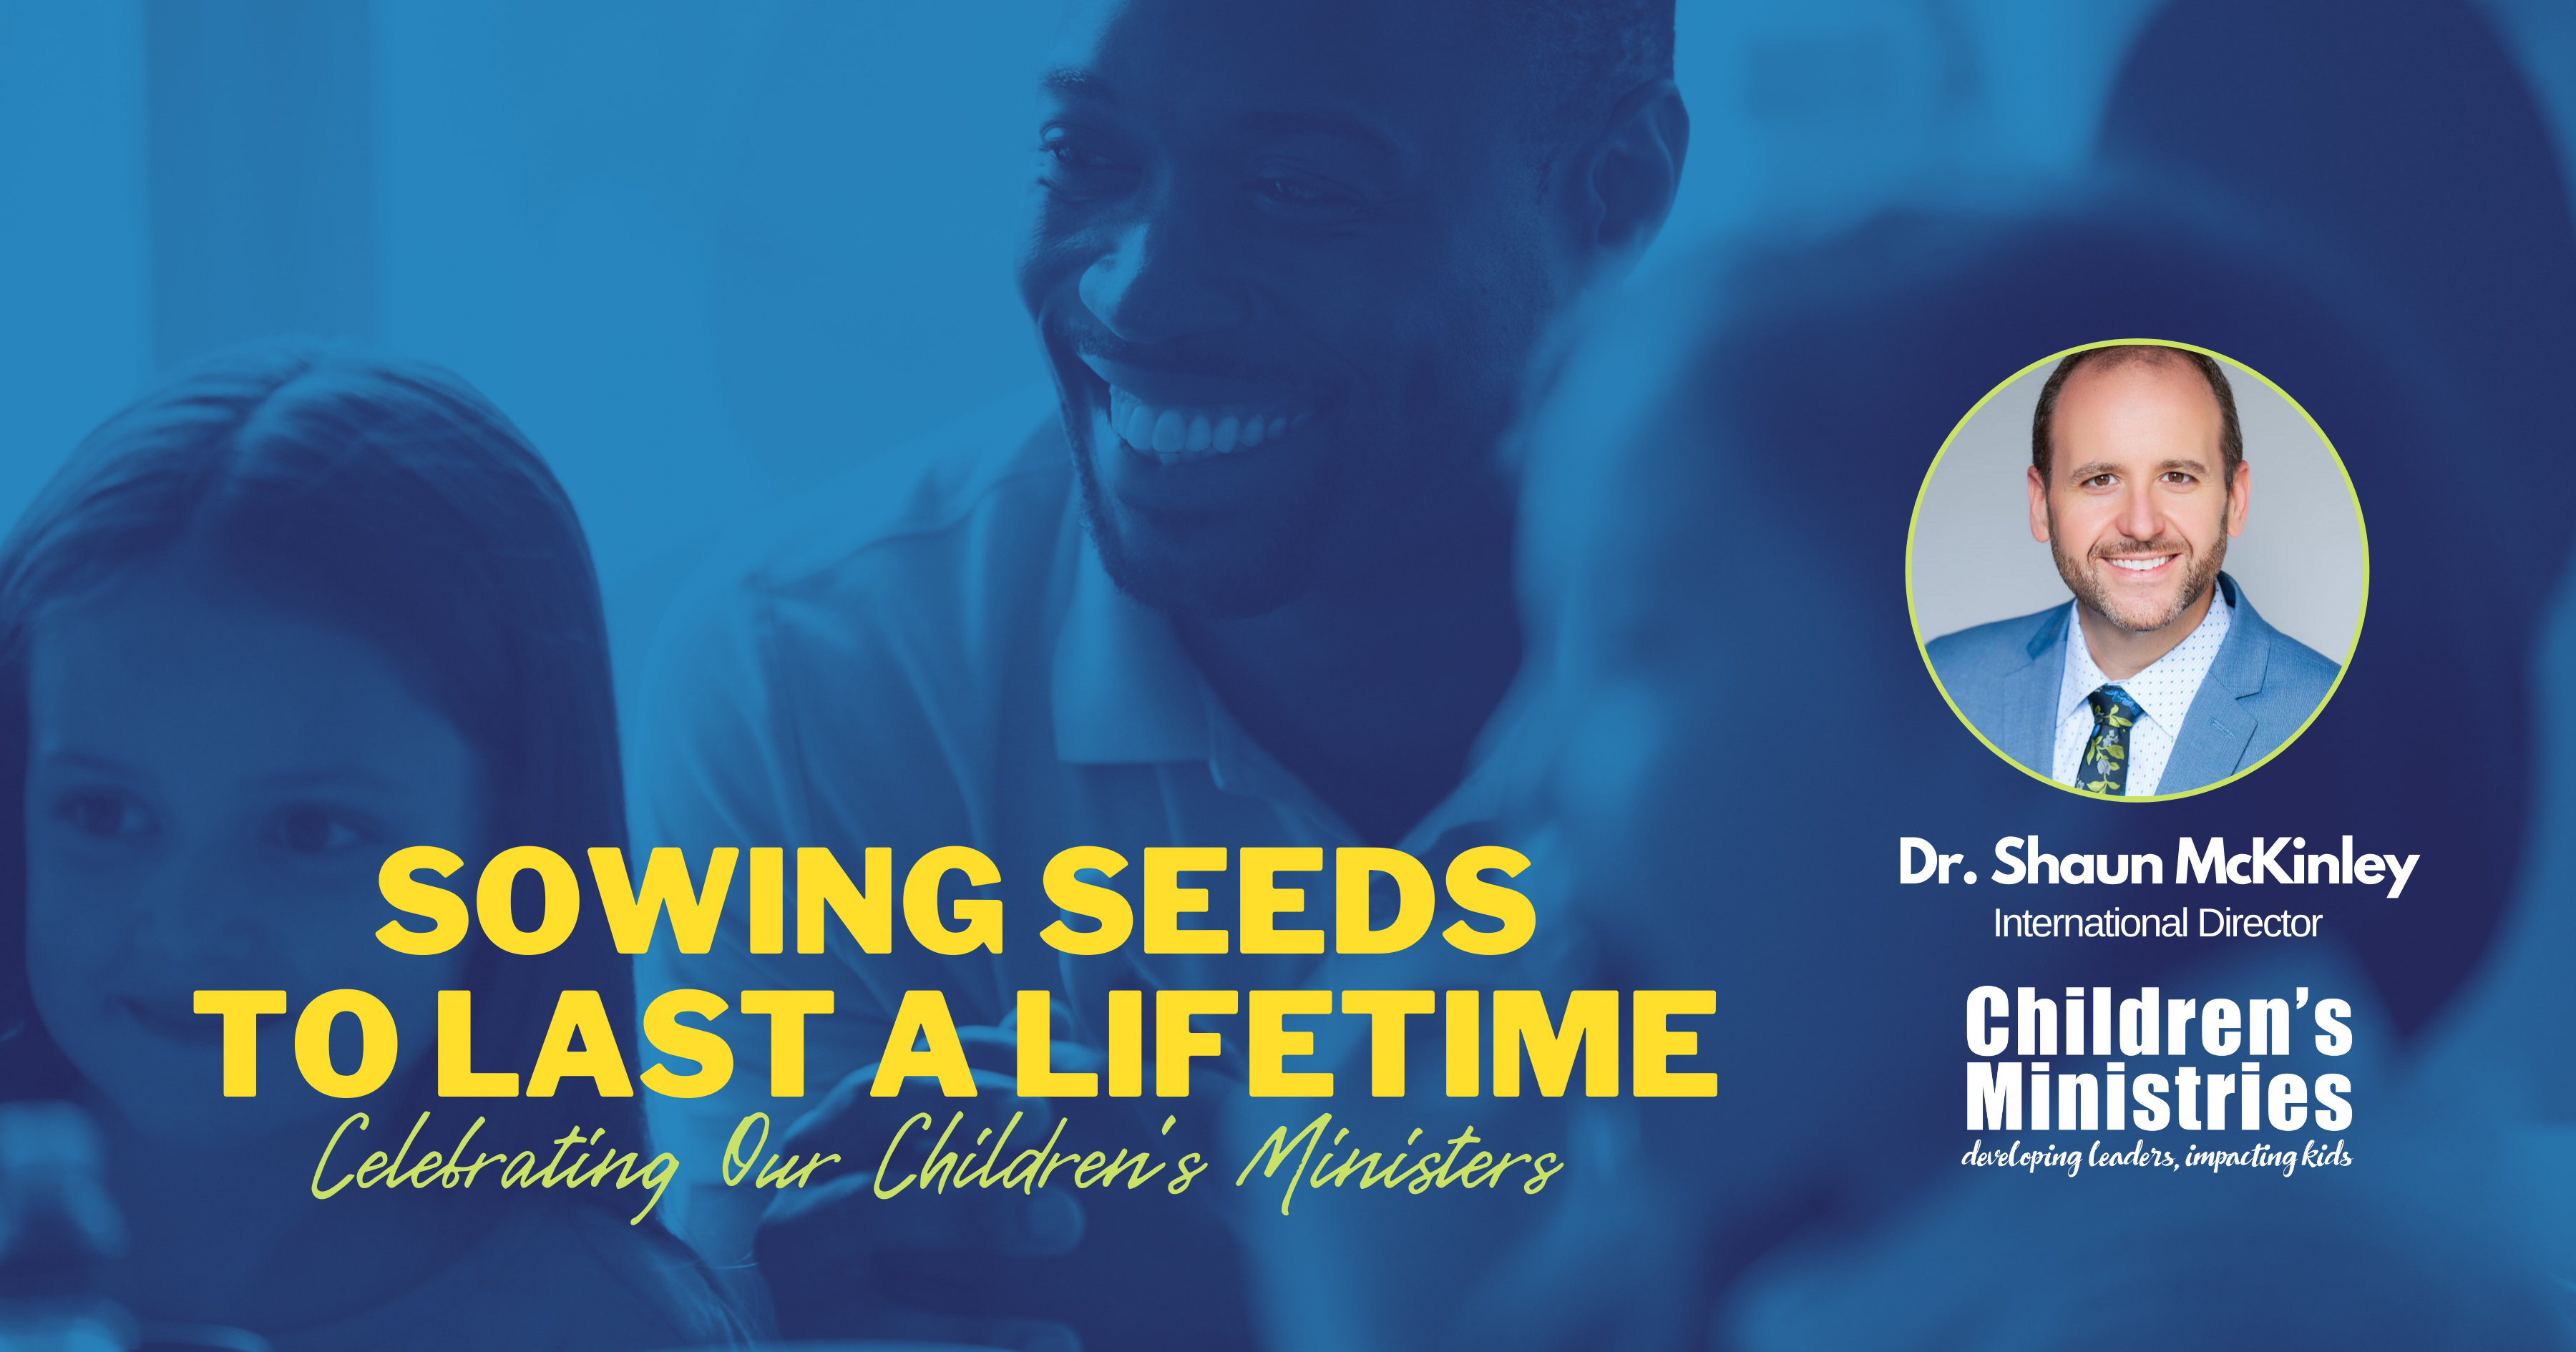 Sowing Seeds To Last A Lifetime